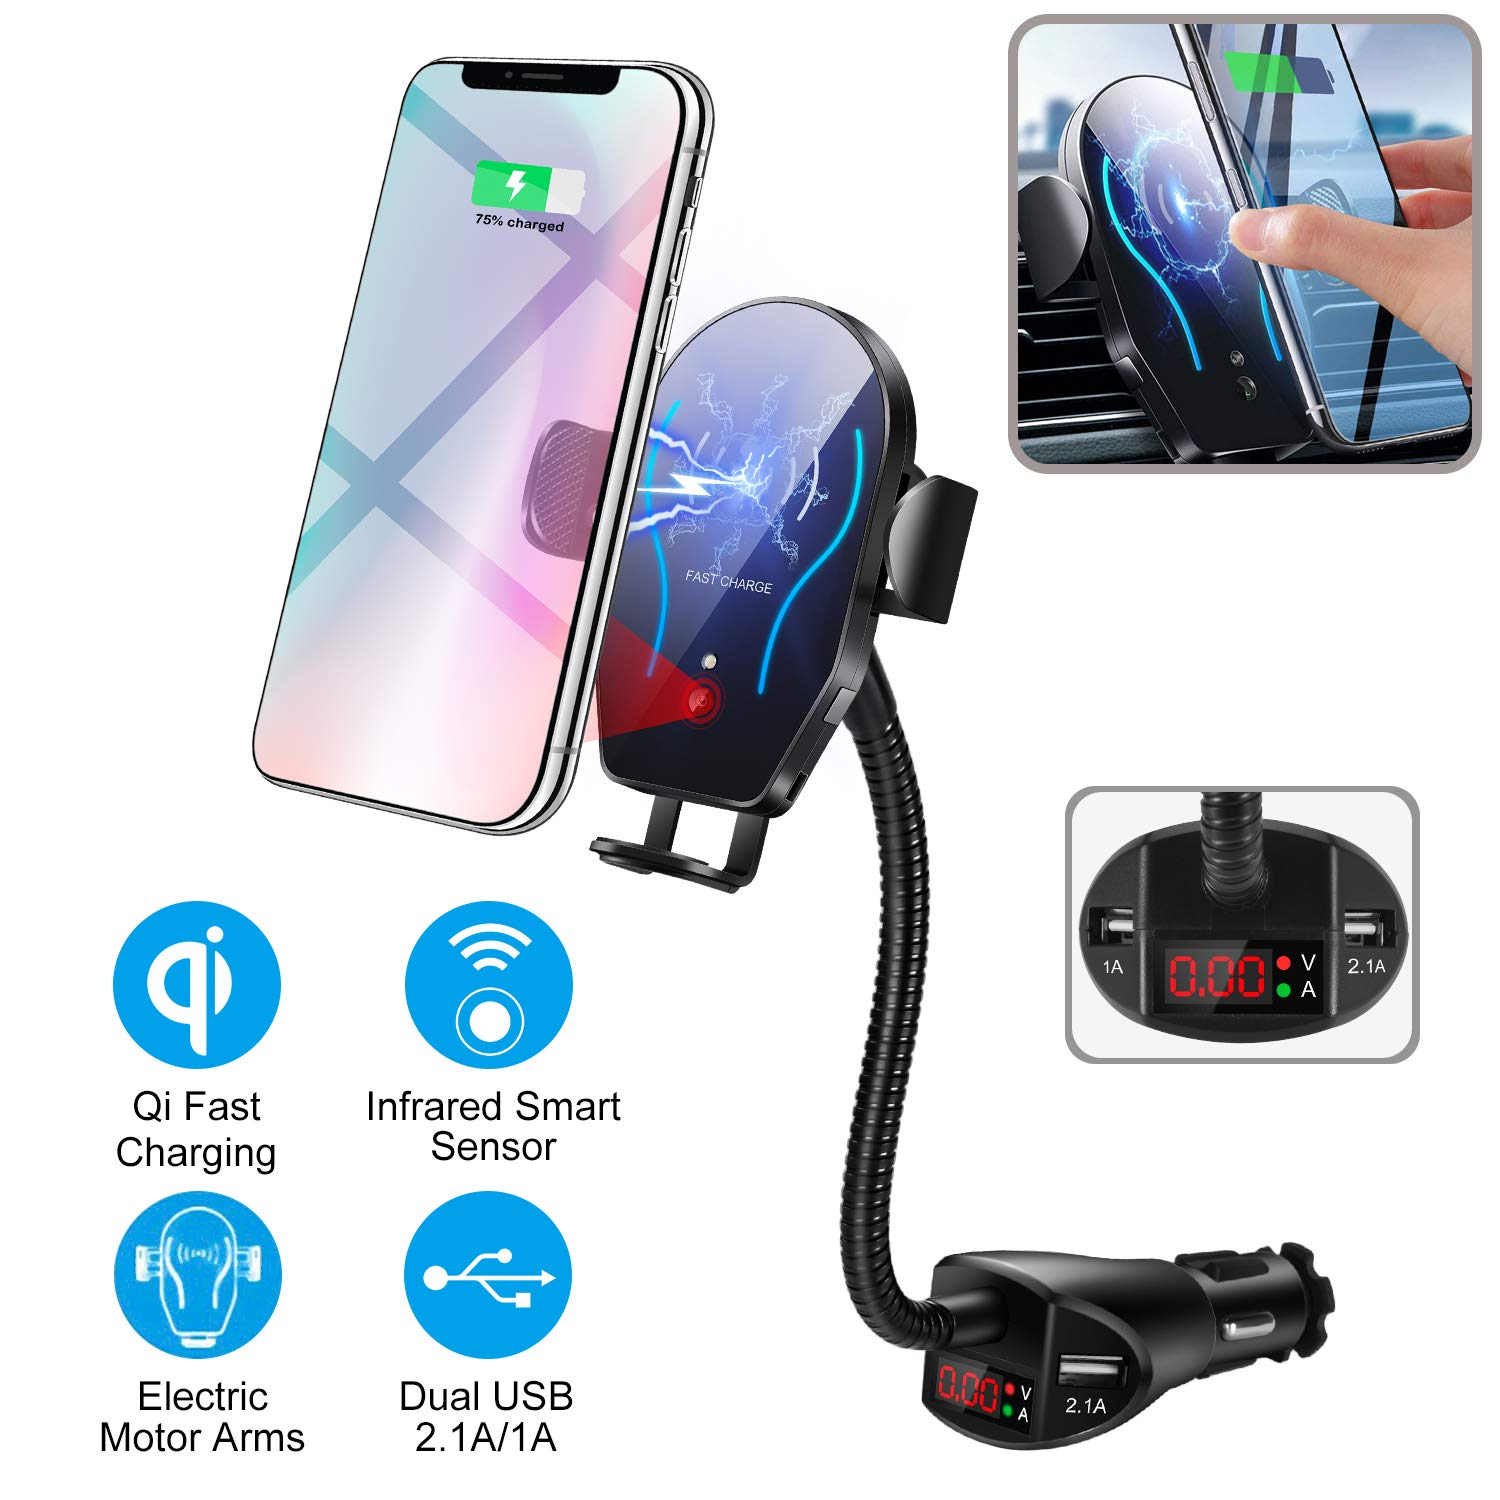 Flow.month Car Cigarette Lighter Wireless Charger- Phone Holder Mount,Automatic Infrared Smart Sensing 10W Qi Fast Wireless Charging Cradle for Cell Phone,Dual USB, 3.1A Max by Flow.month